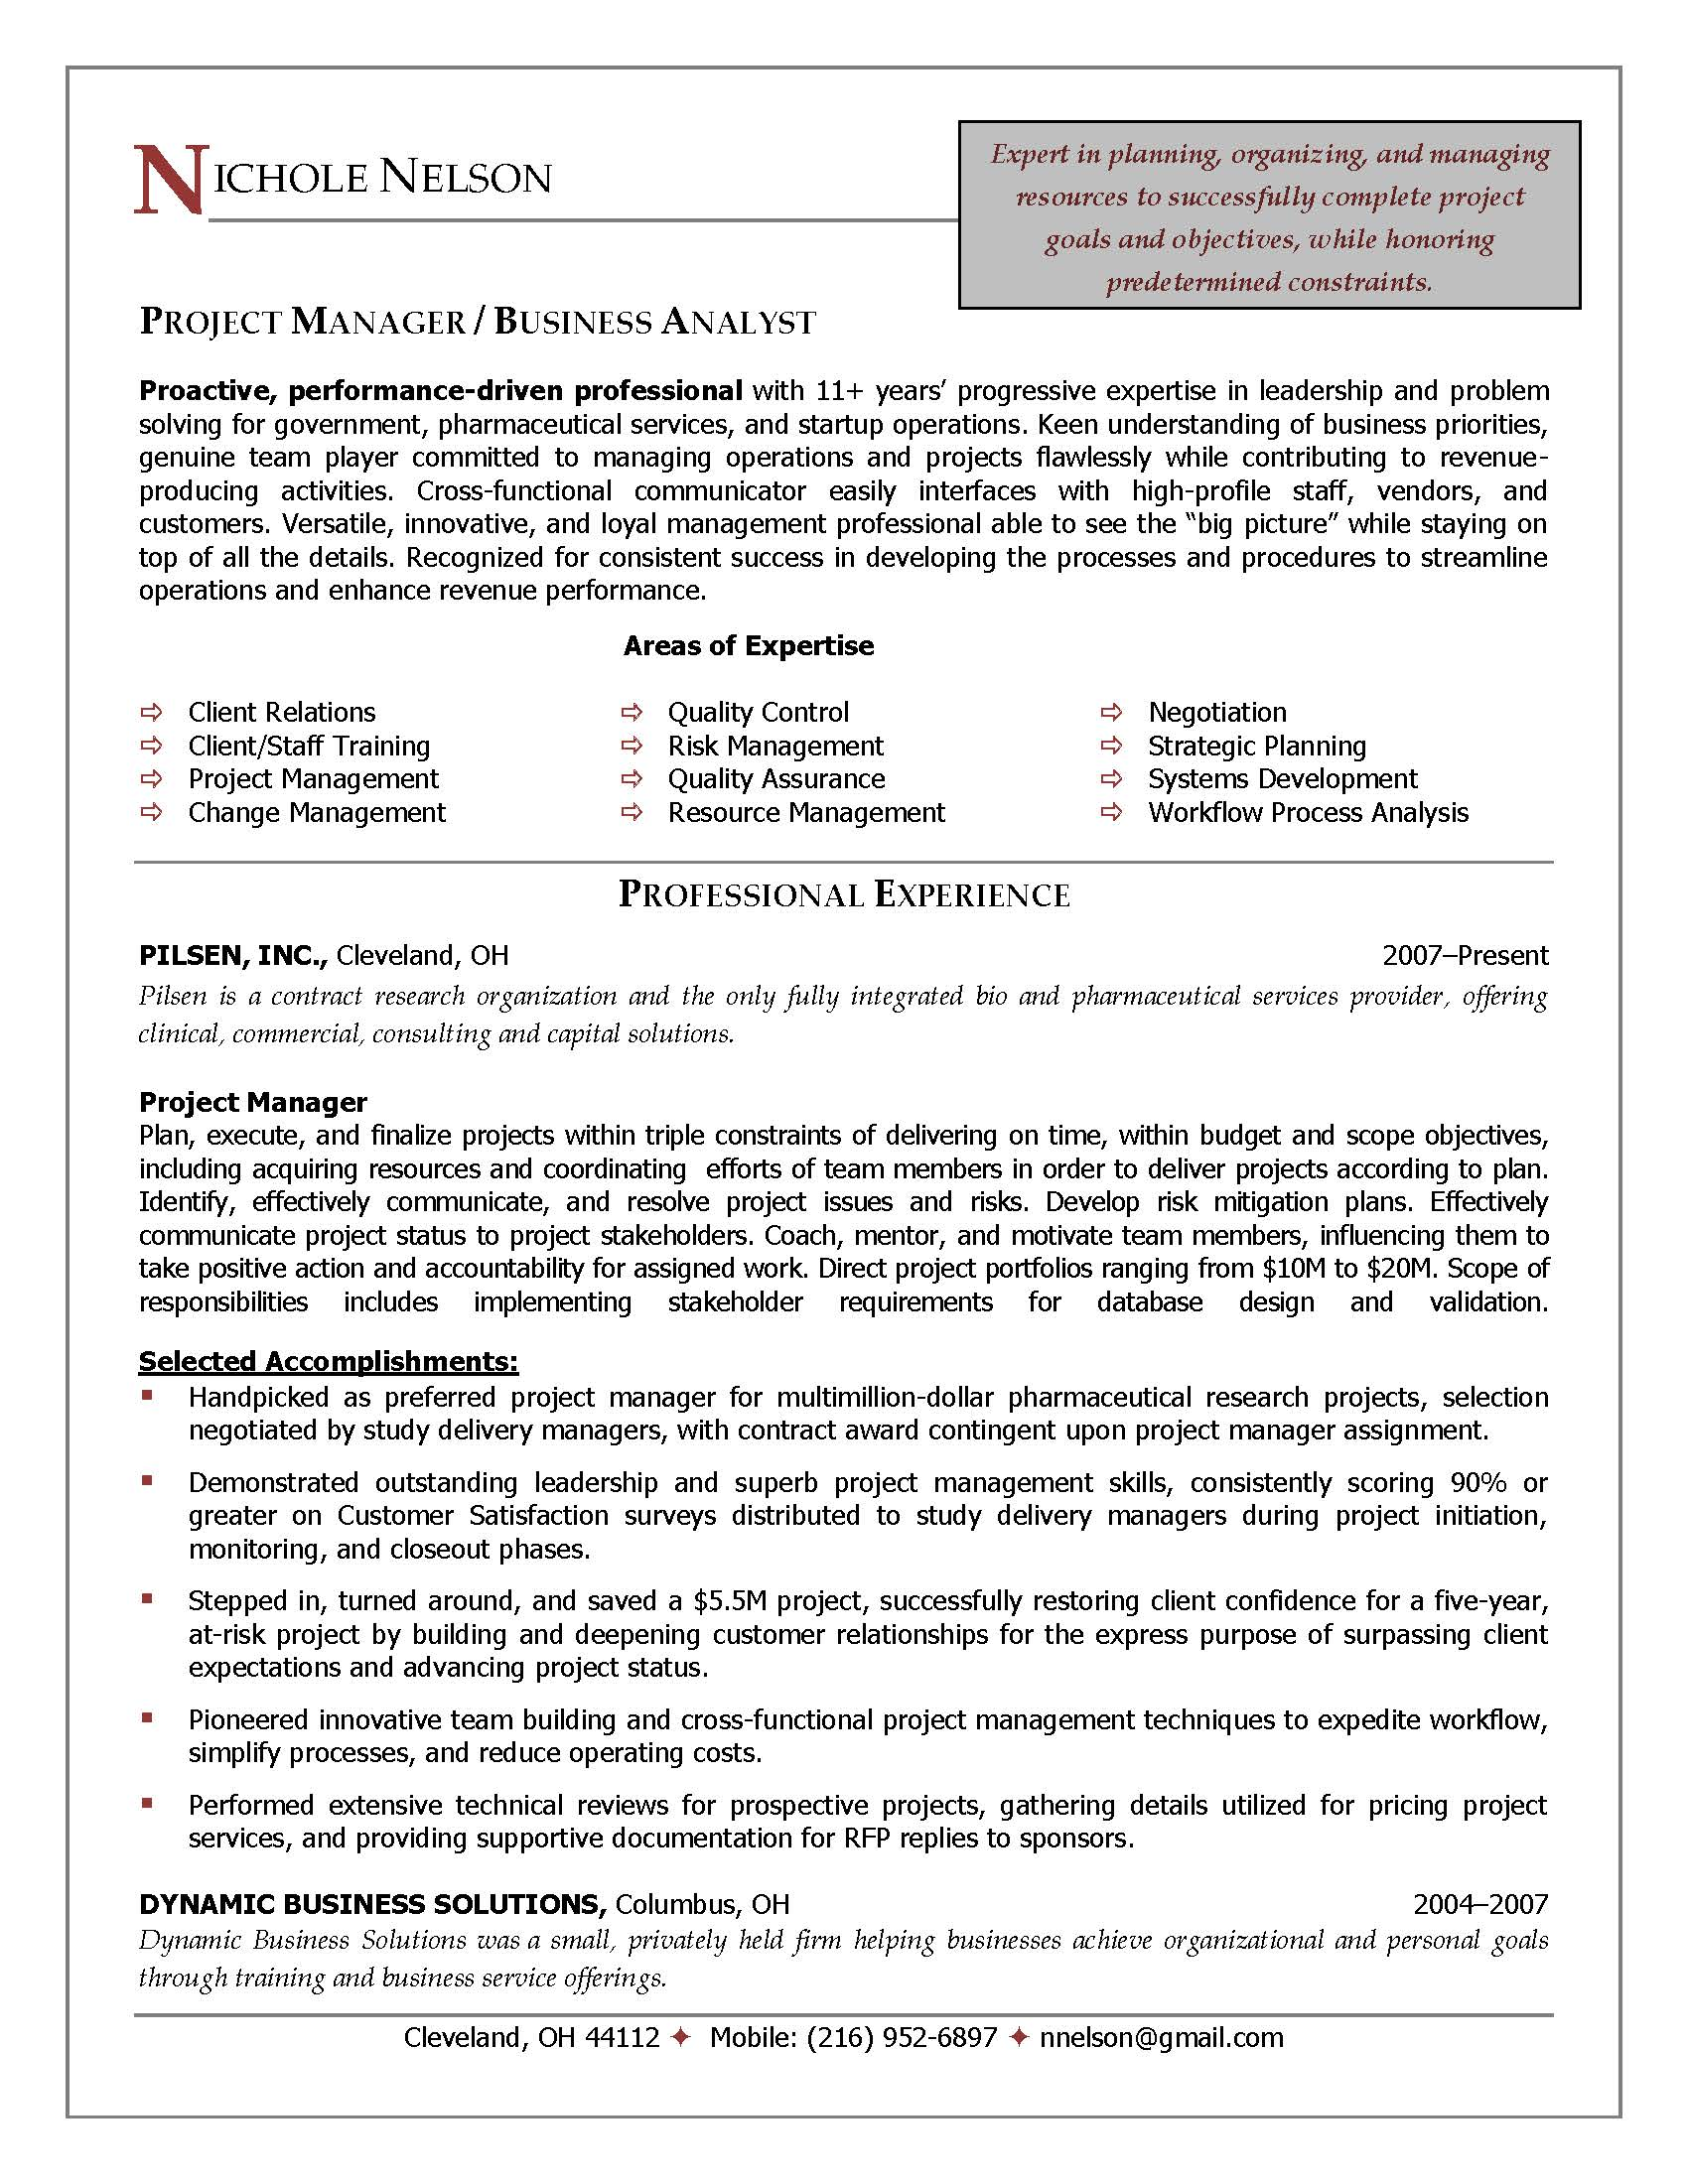 Project Manager Resume Sample, Provided By Elite Resume Writing Services  Change Management Resume